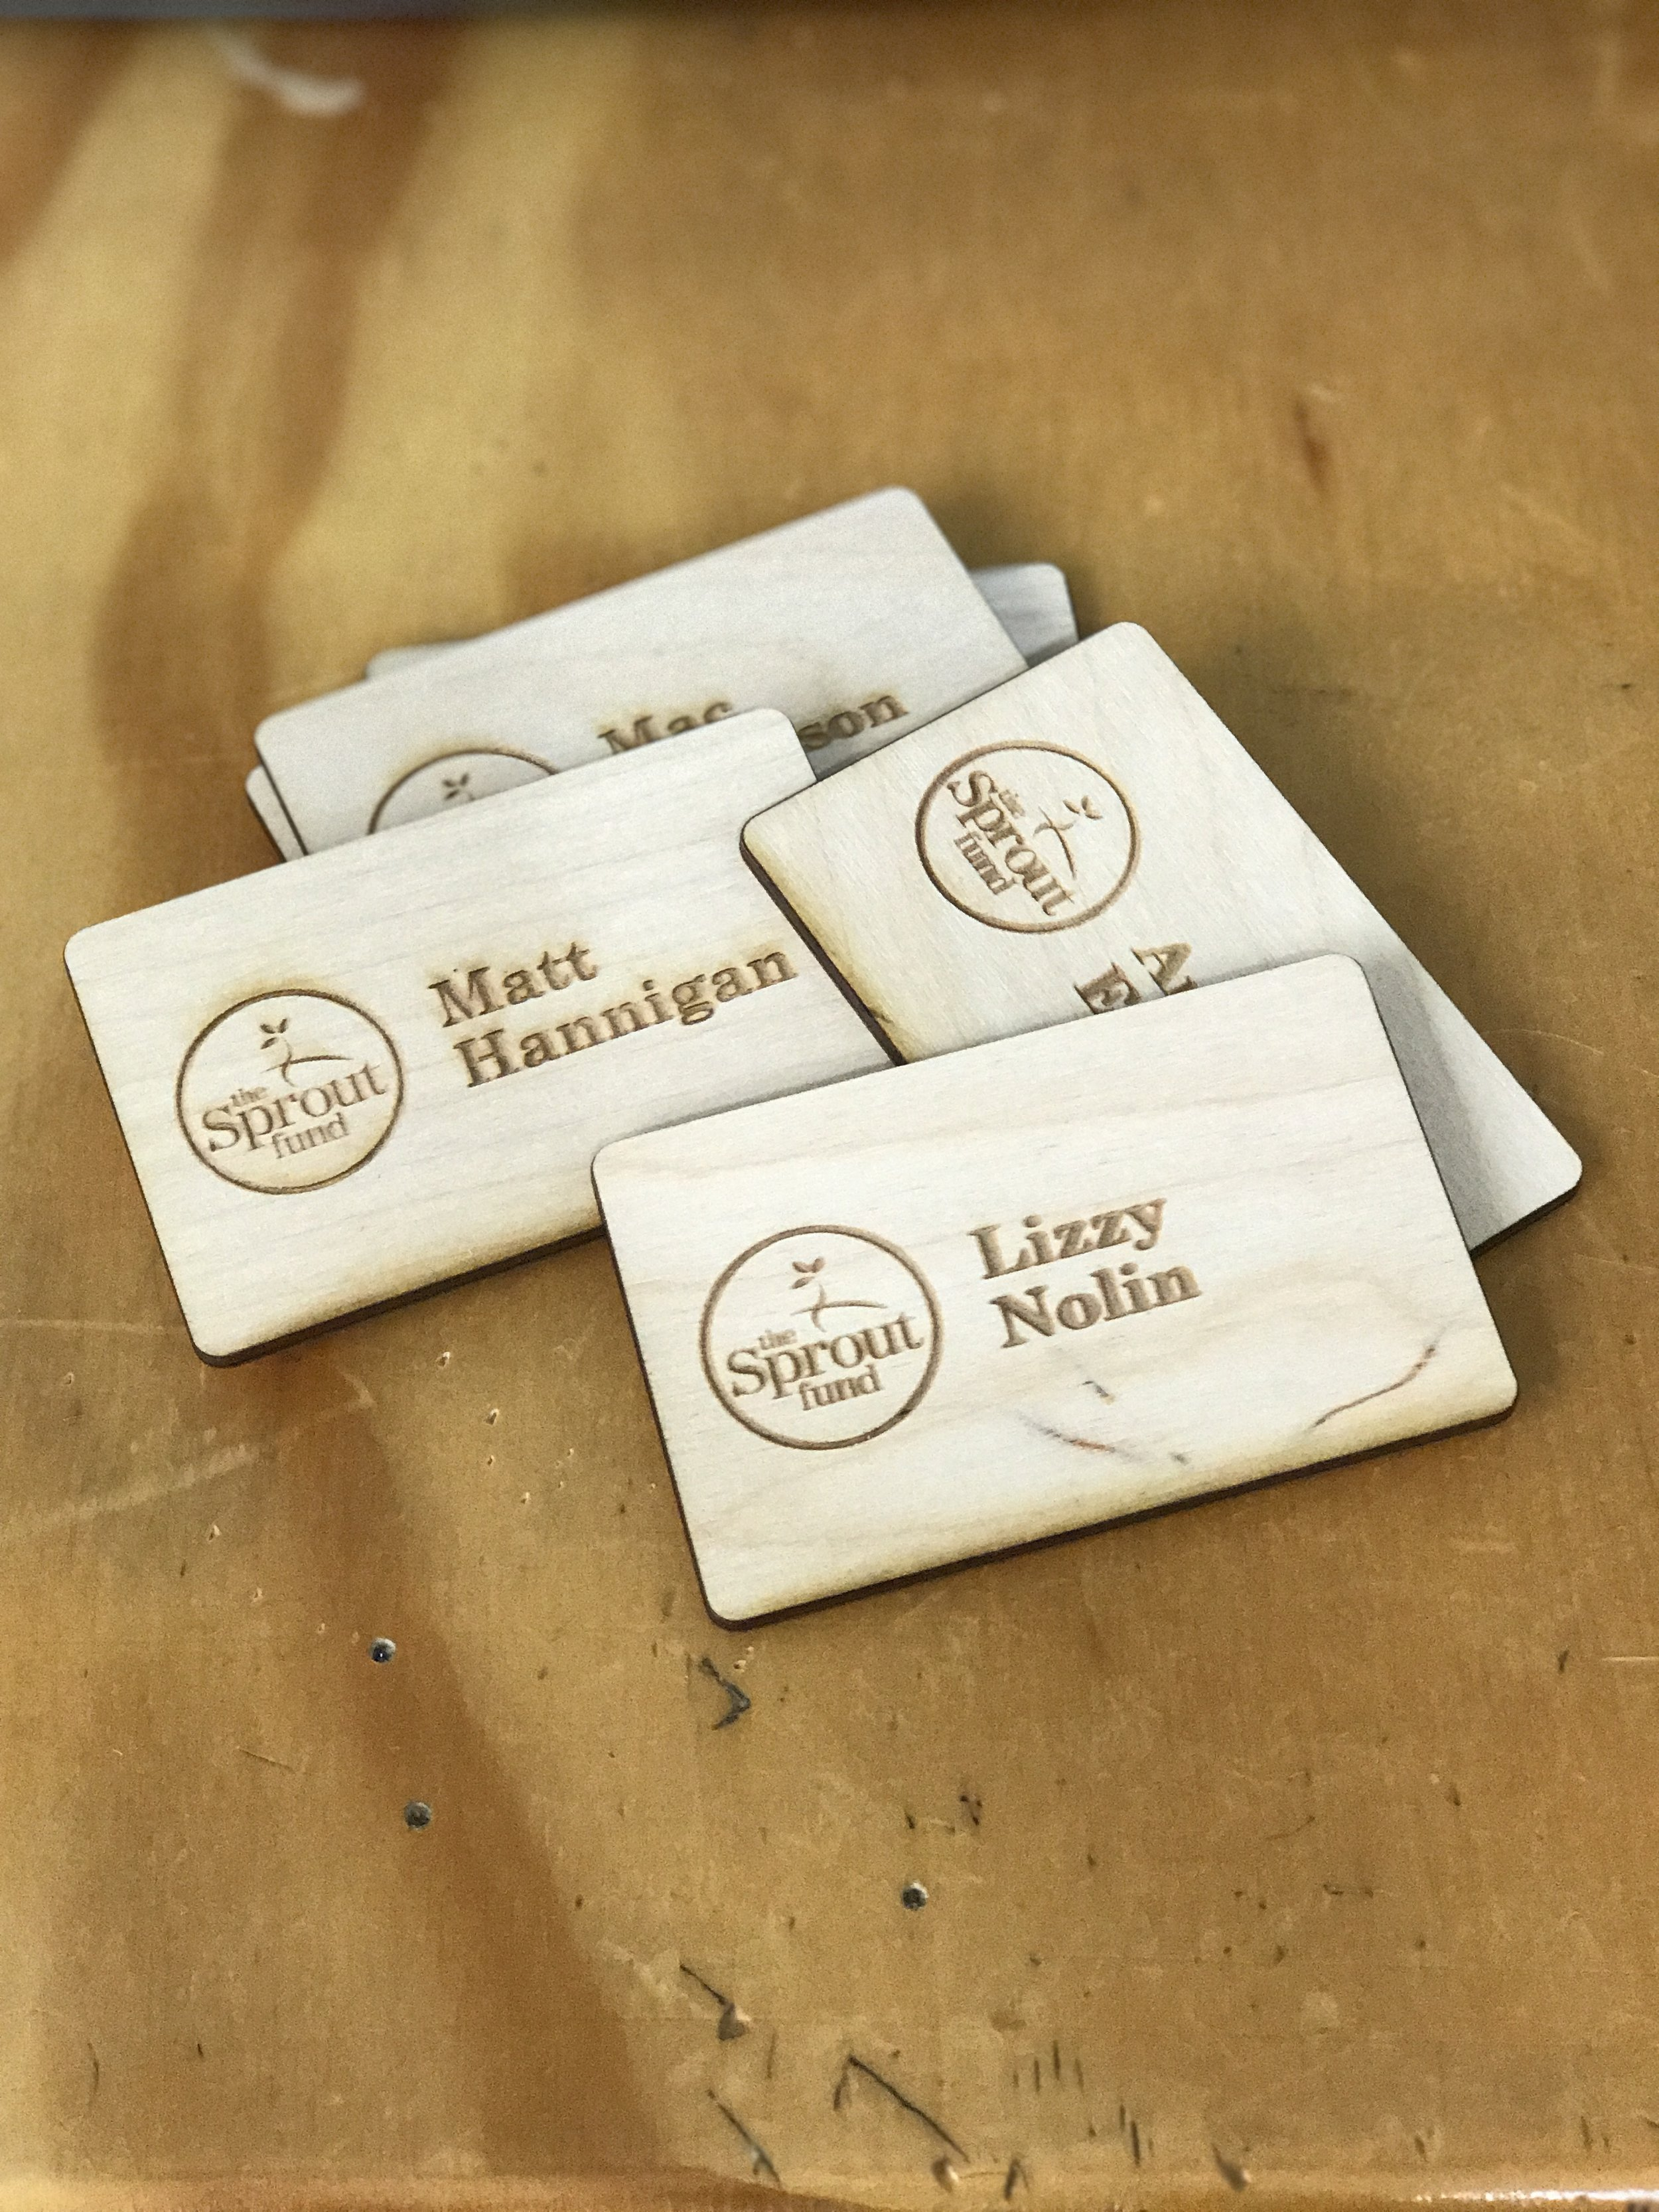 Sprout Fund Staff Name Tags